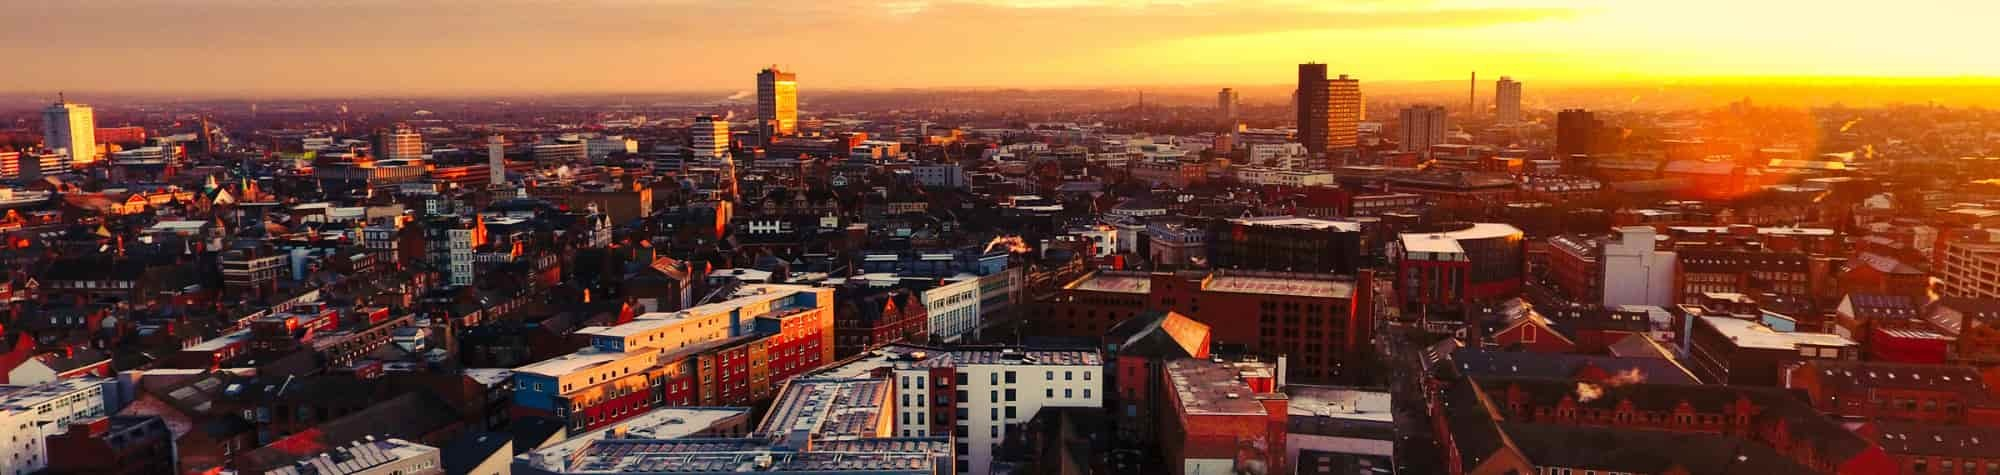 Leicester Recruitment Agency Header Image. Featuring an overhead view of Leicester city centre at sunset, with an array of landmark buildings and streets. Leicester is home to one of Search Consultancy's exceptional recruitment agencies in England.